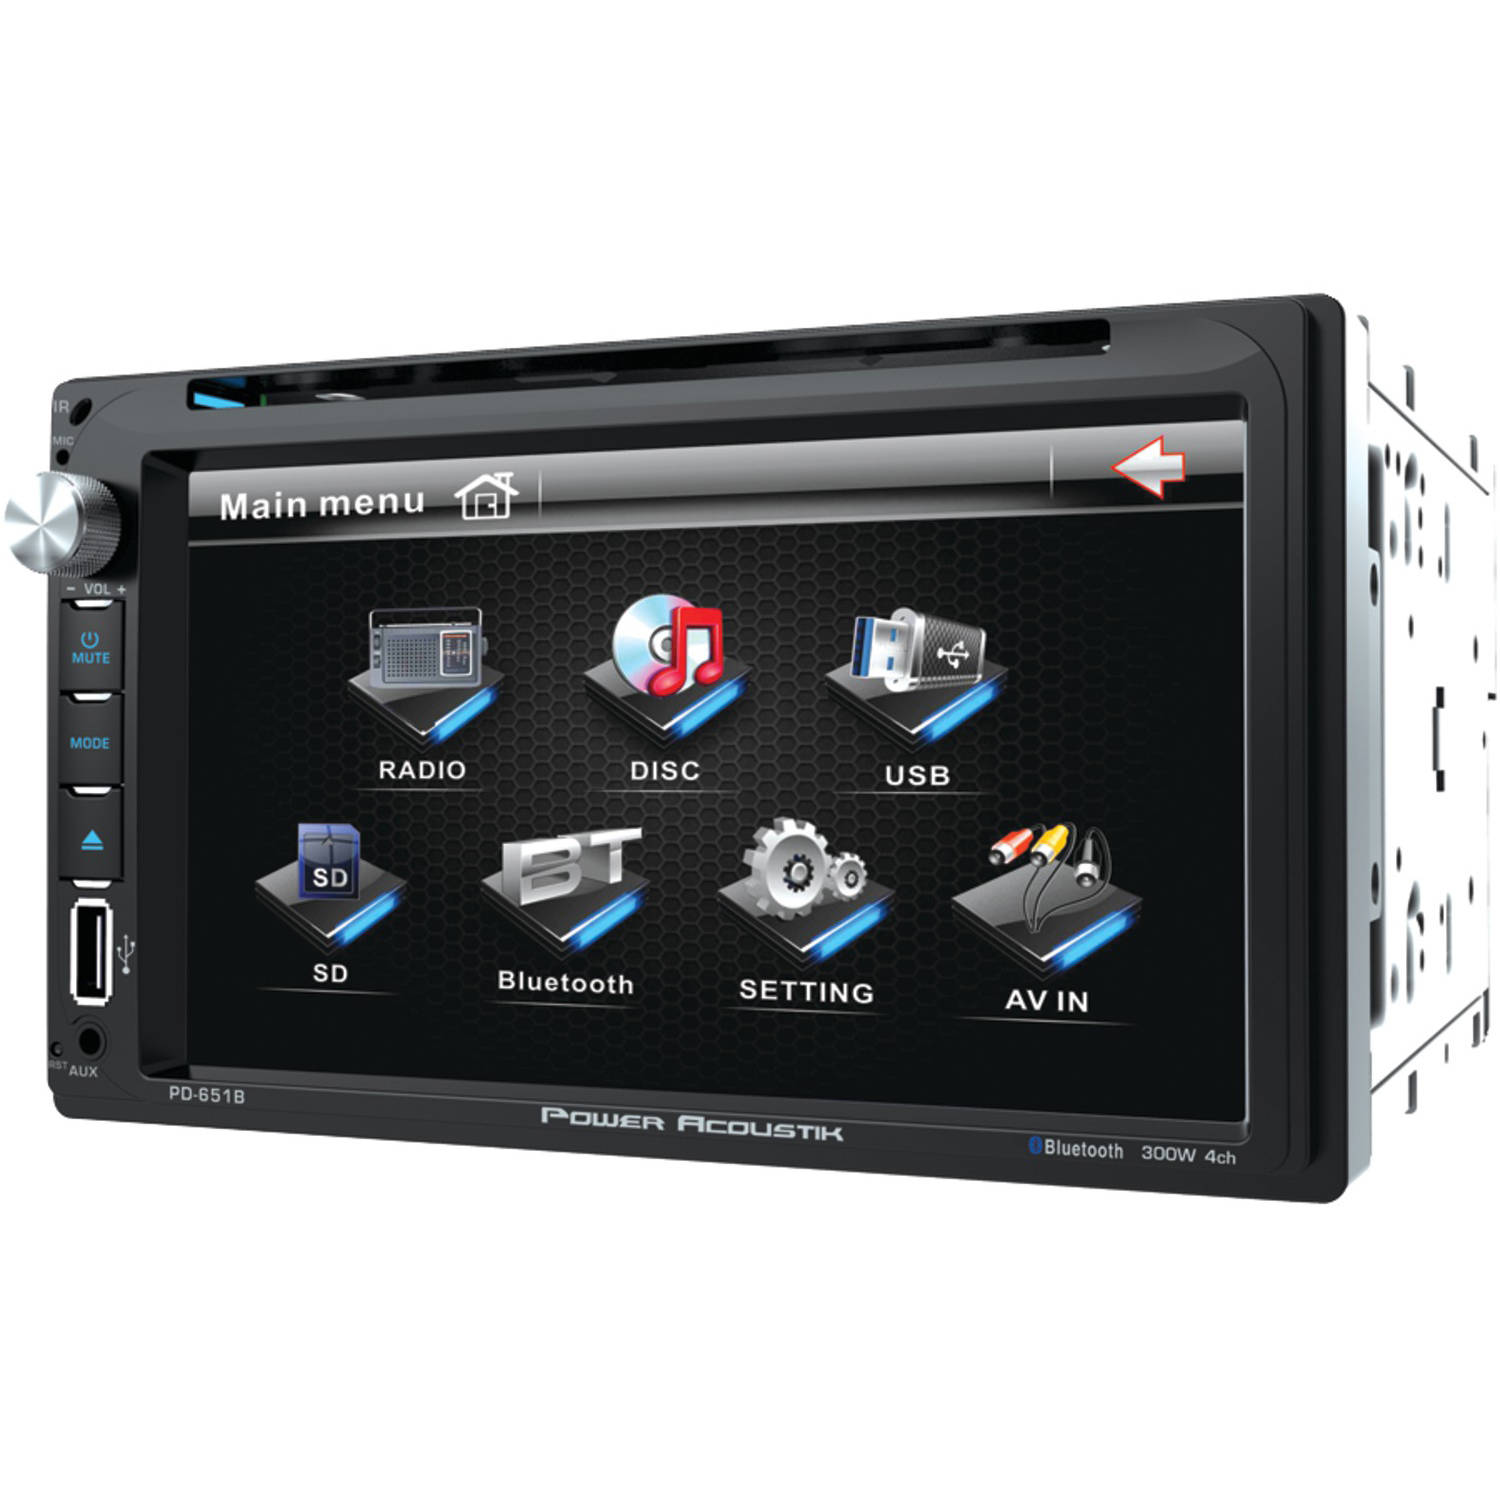 """Power Acoustik PD 651B 6.5"""" Double-DIN In-Dash LCD Touchscreen DVD Receiver with Bluetooth"""